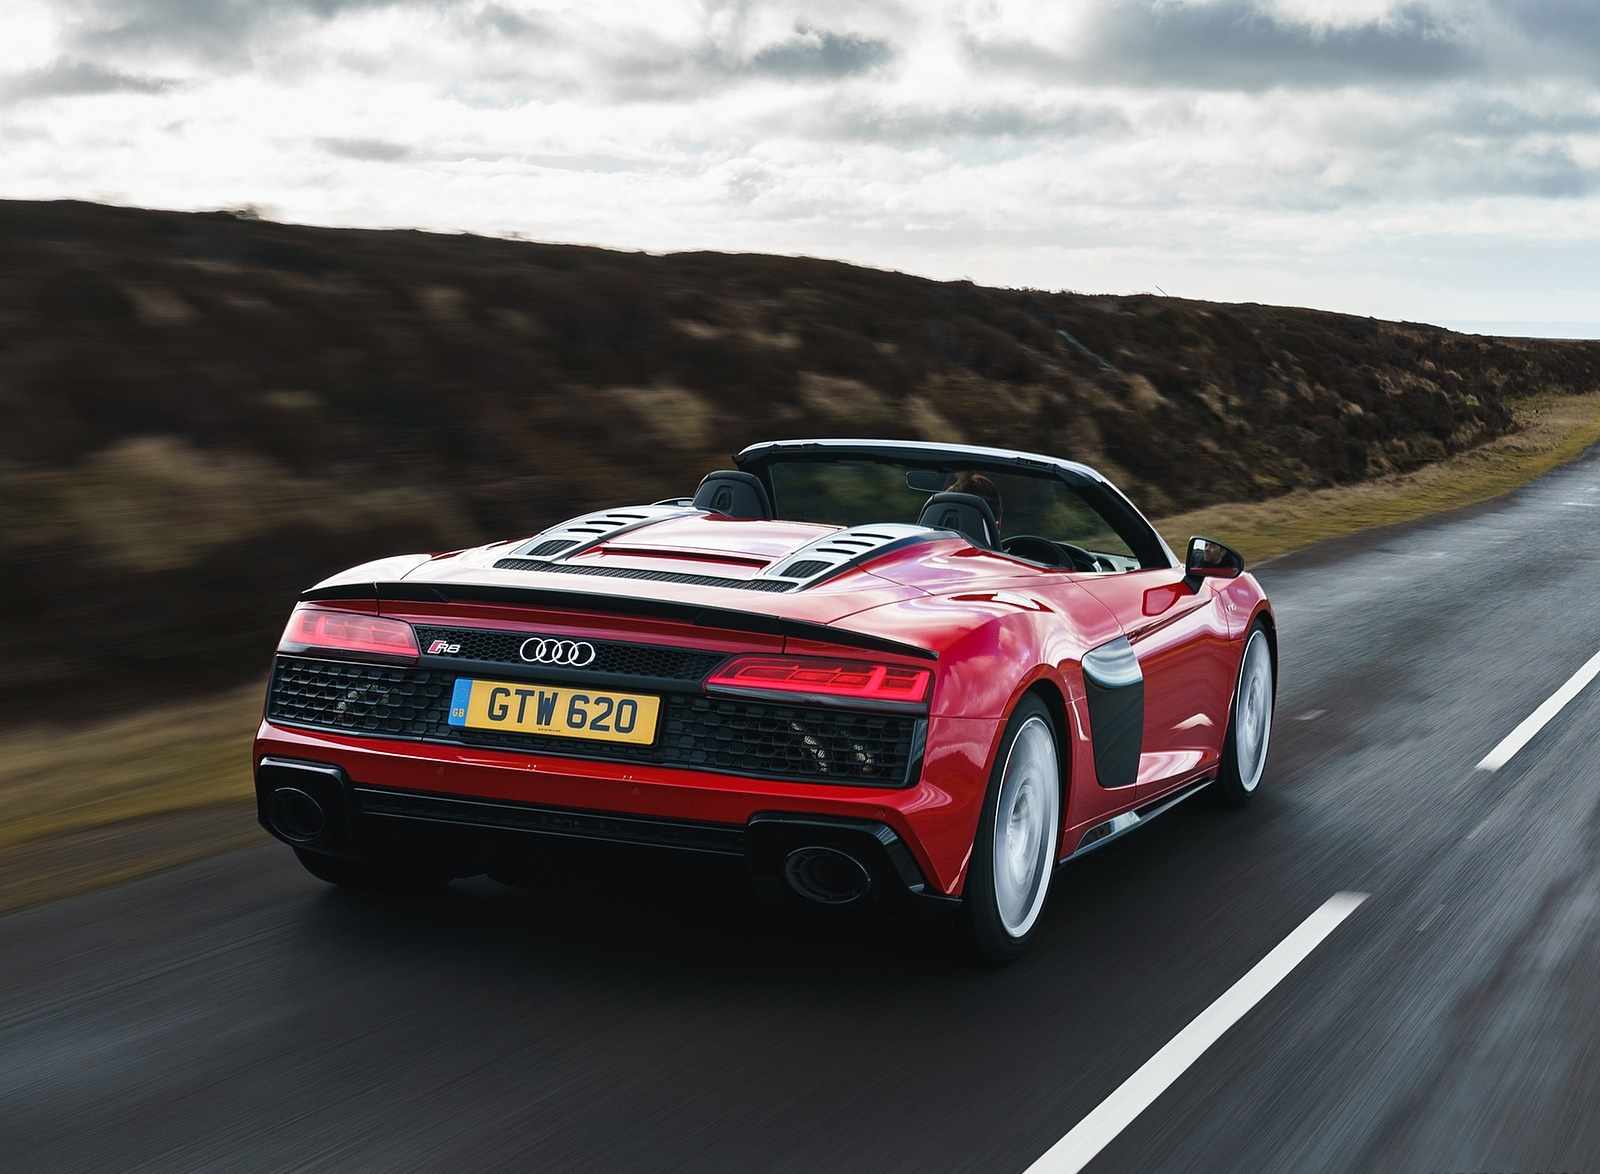 2019 Audi R8 V10 Spyder Performance quattro (UK-Spec) Rear Three-Quarter Wallpapers (7)